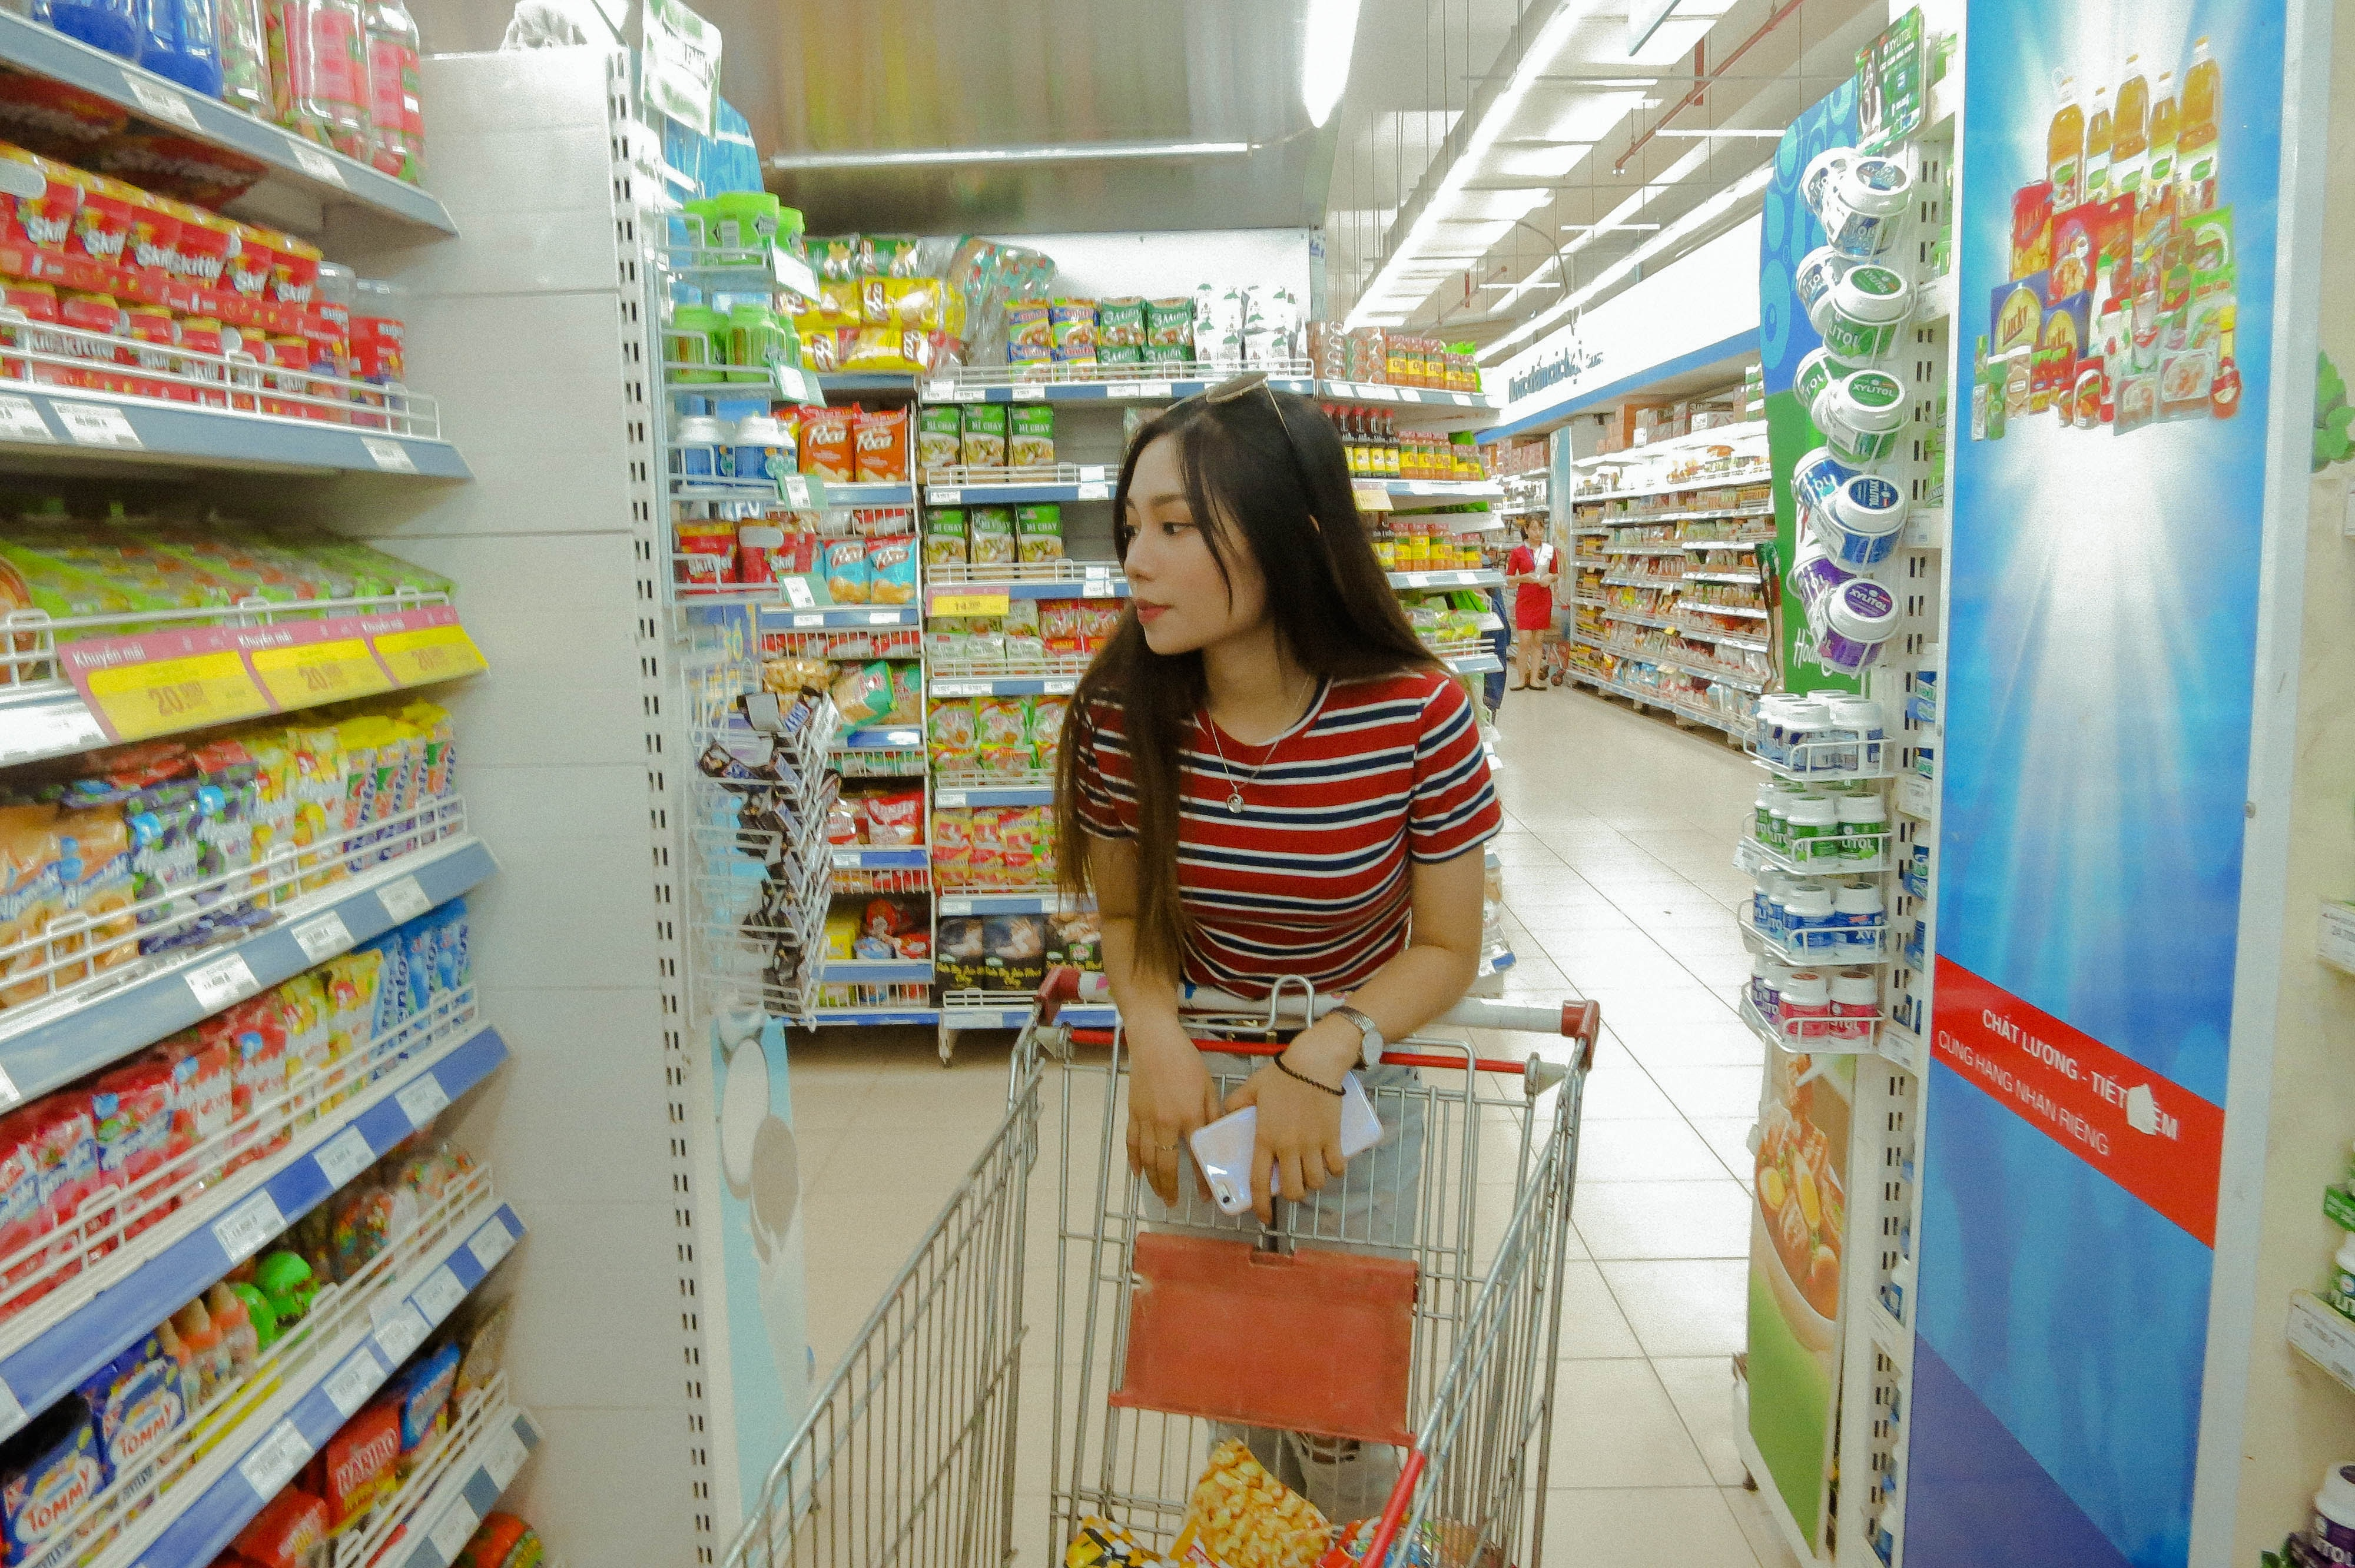 More Merchants Are Checking Out Cashierless Store Systems